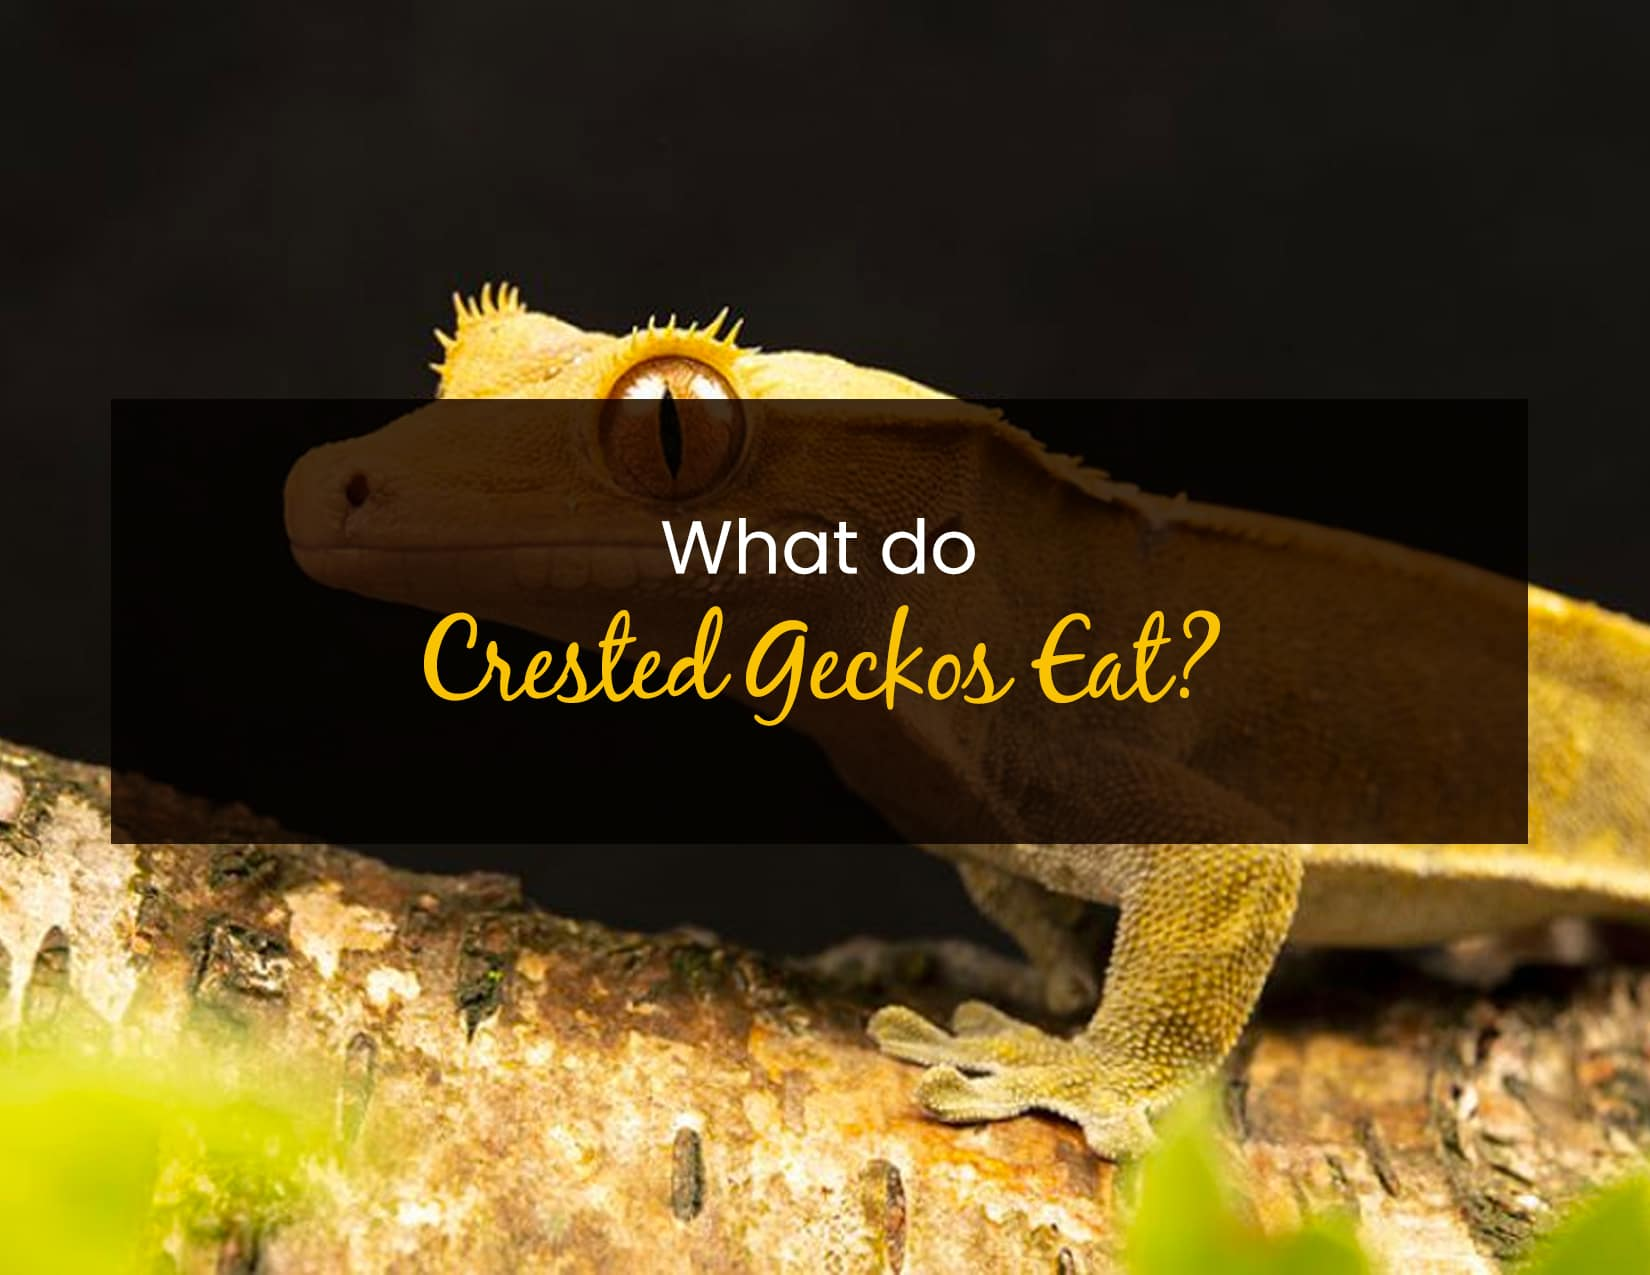 What do crested geckos eat - WP